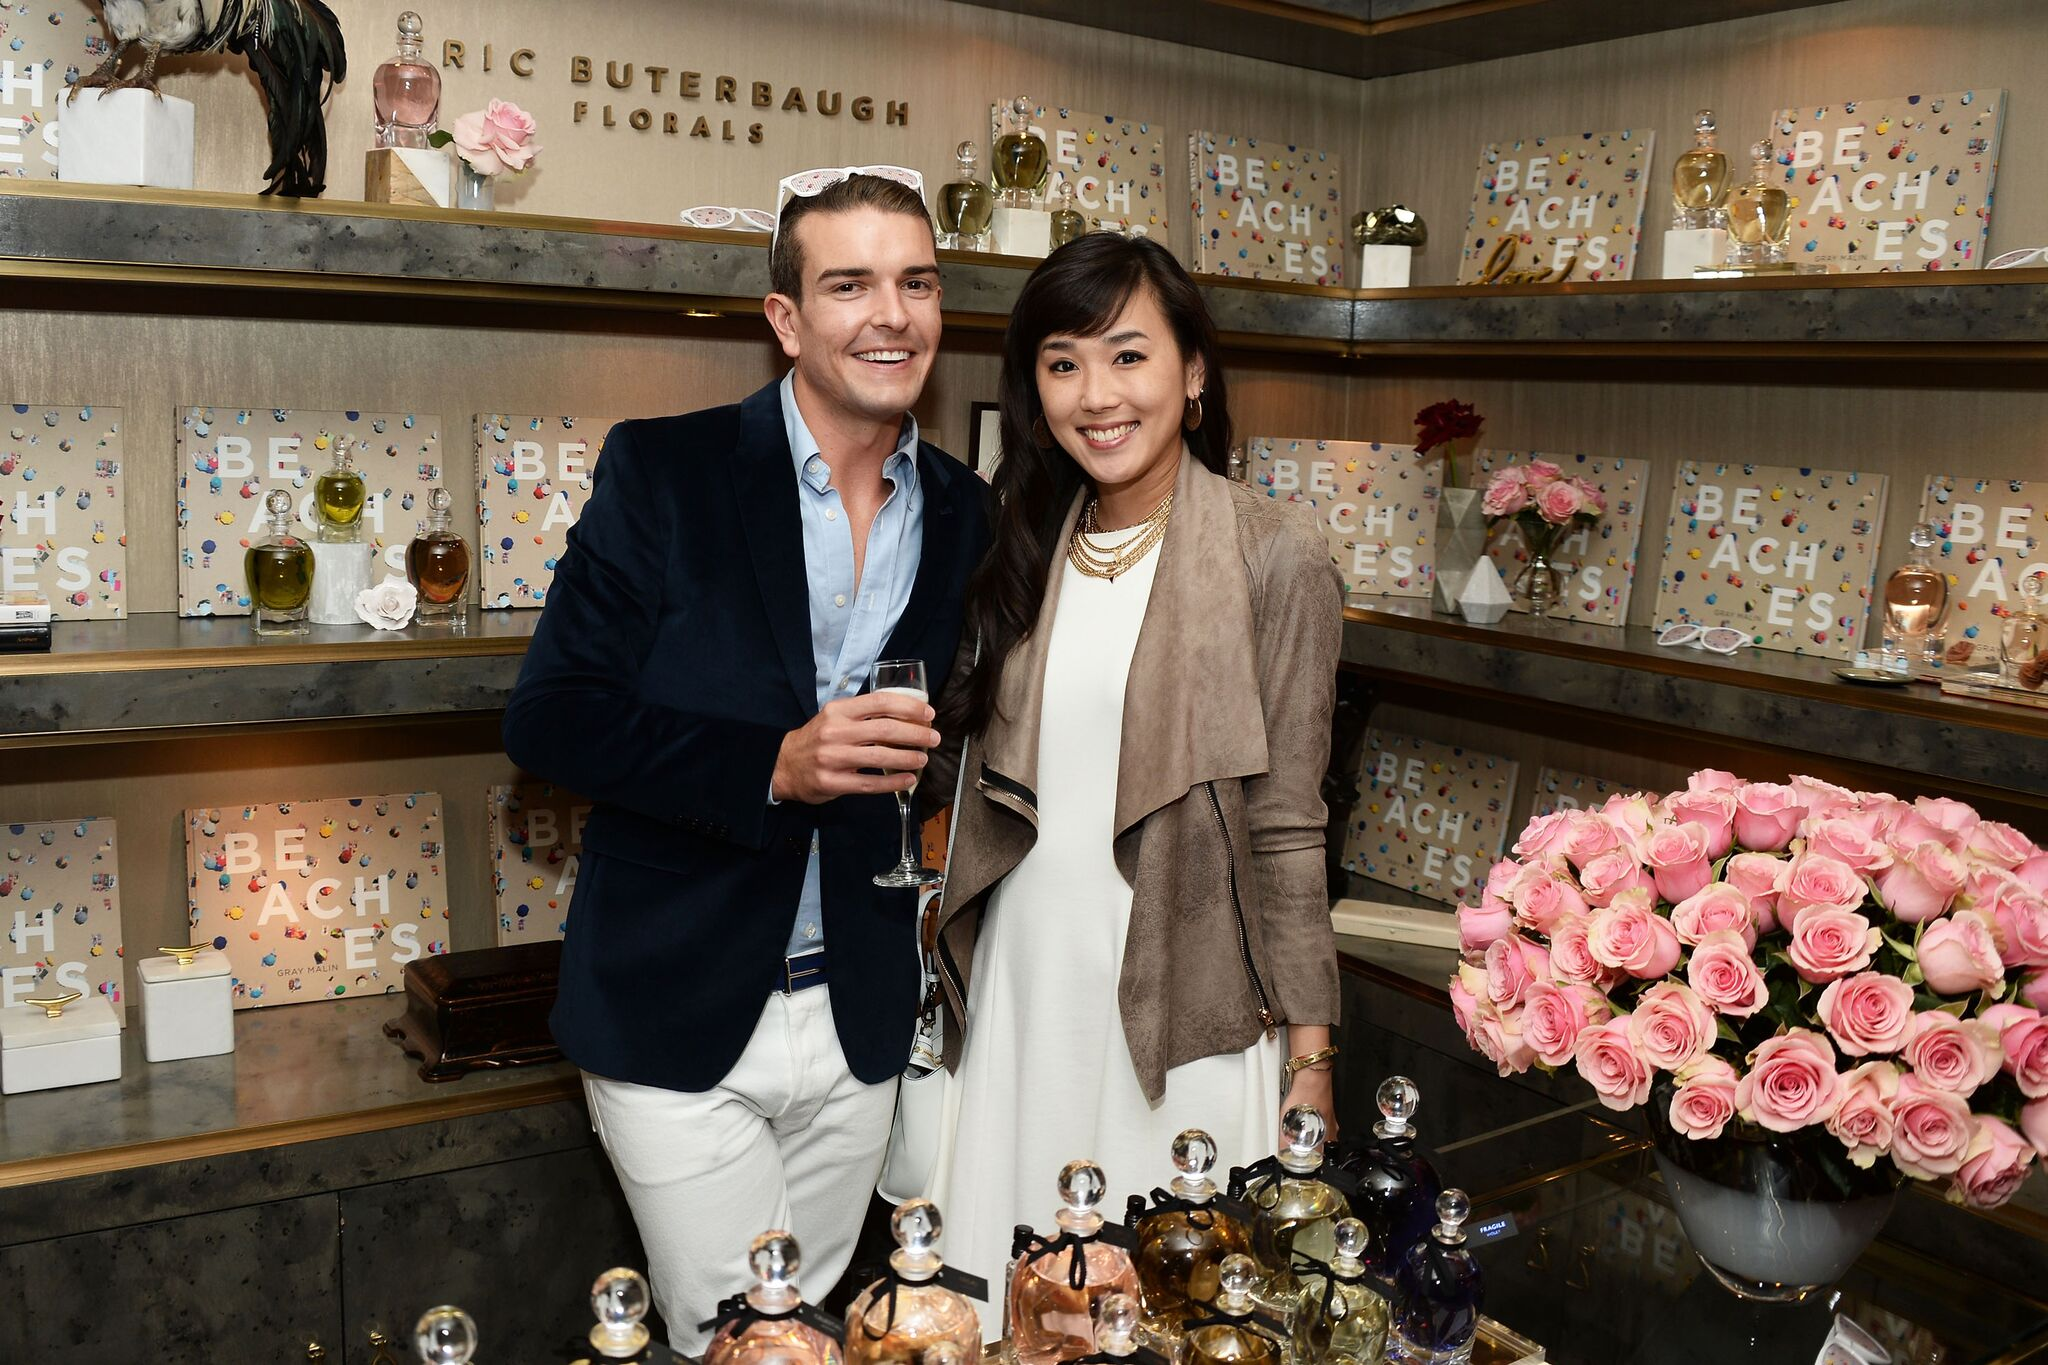 Gray Malin's BEACHES Book Launch Party at Eric Buterbaugh Florals